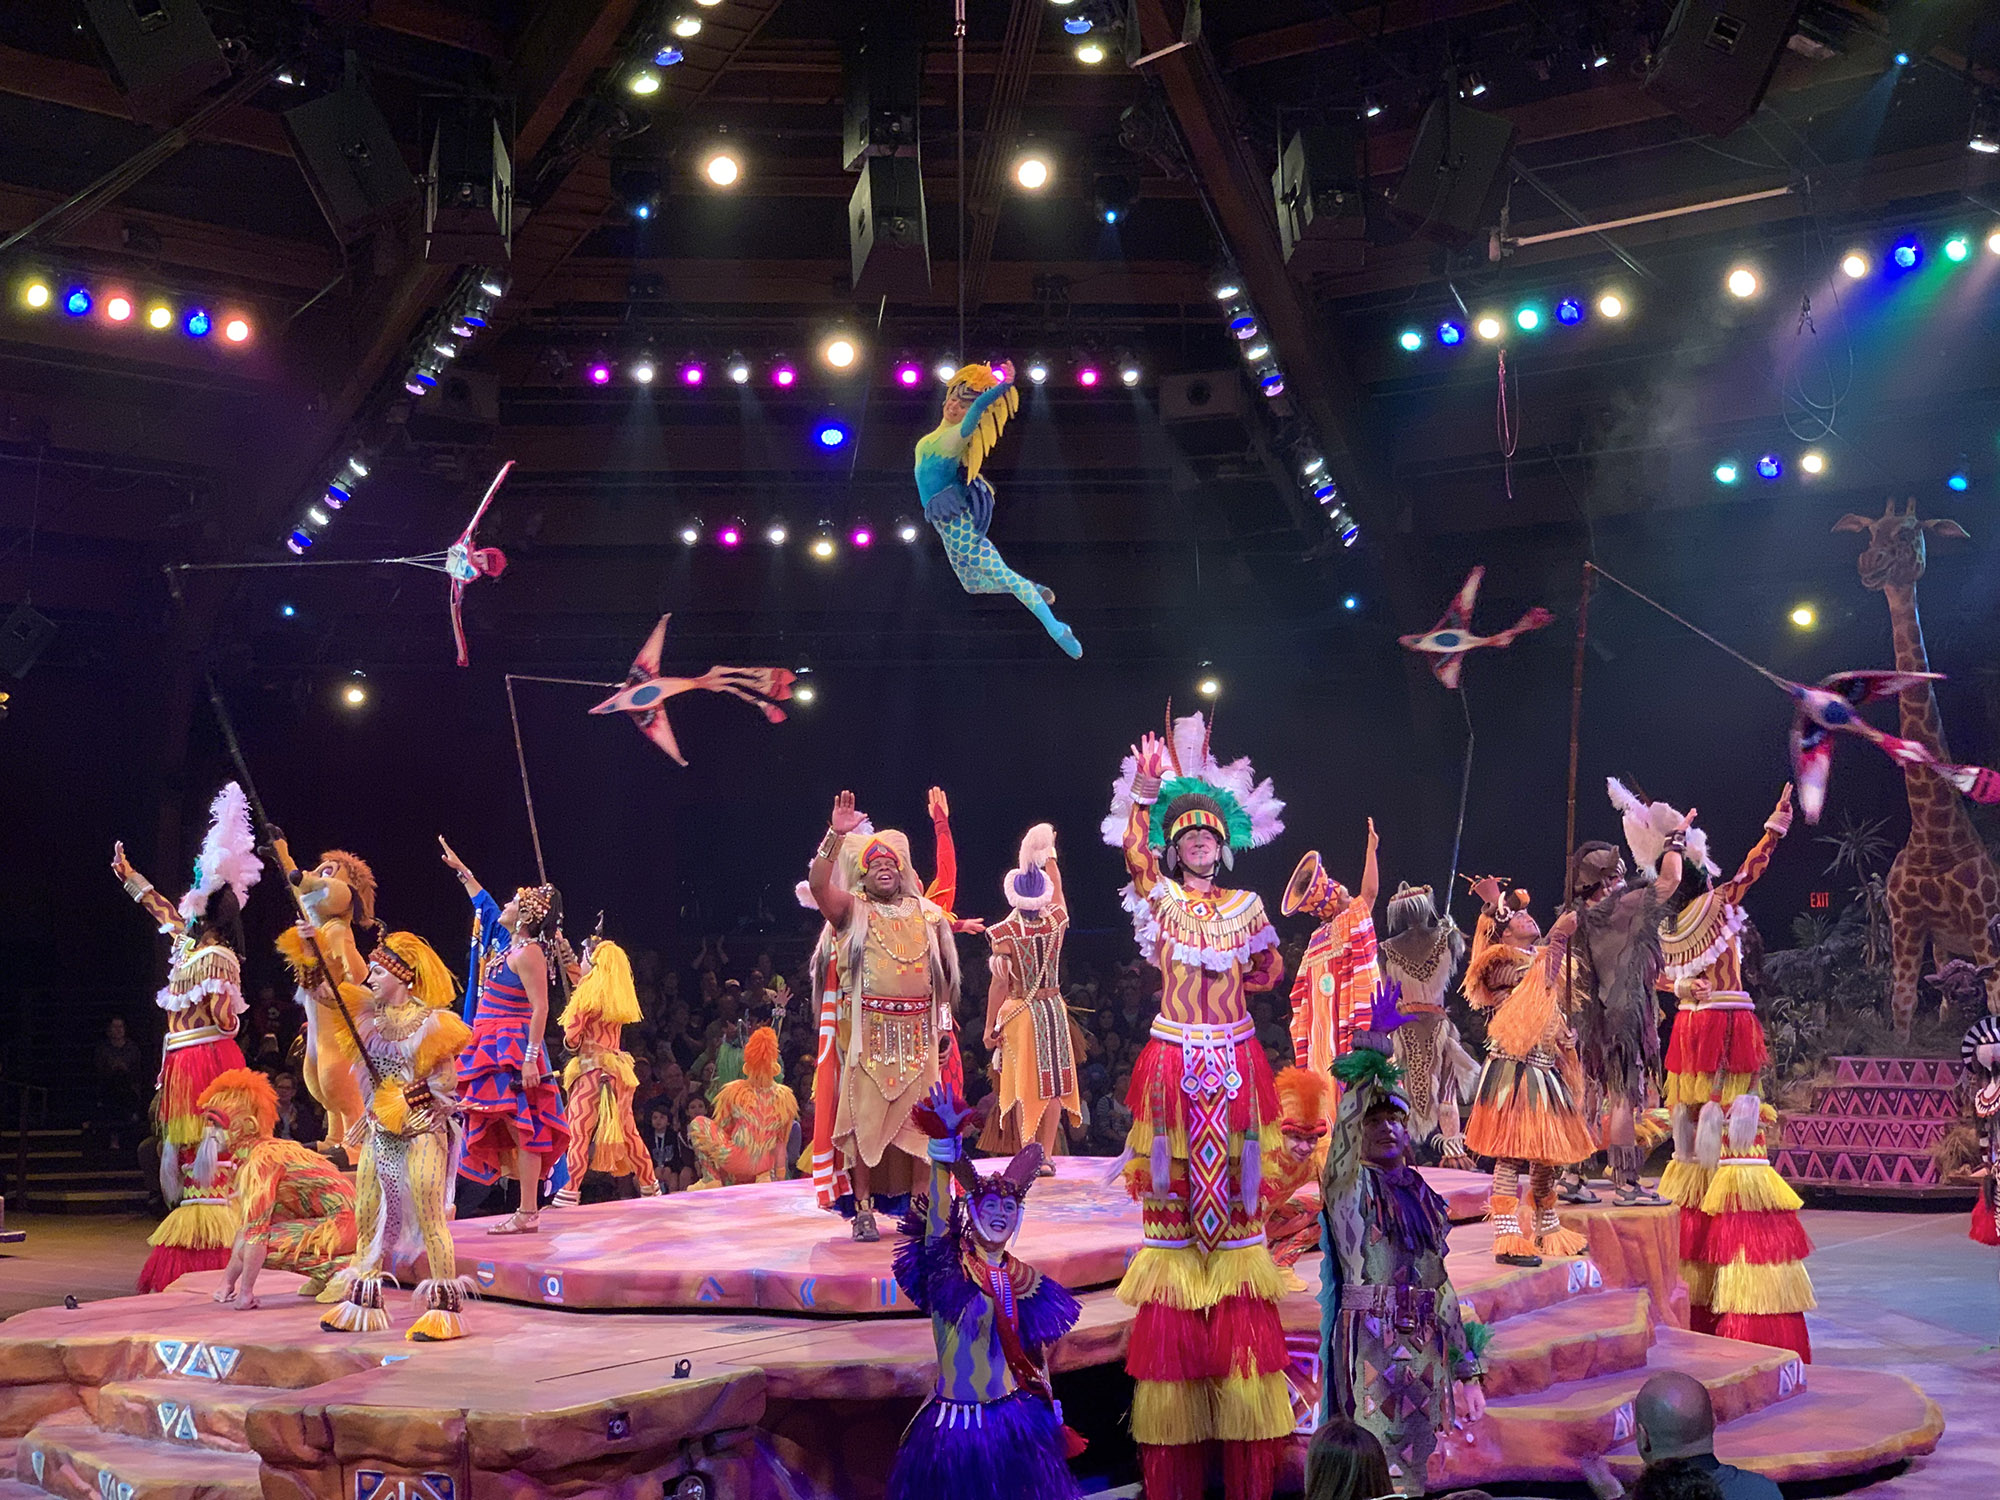 festival of the lion king - longest attraction at disney world